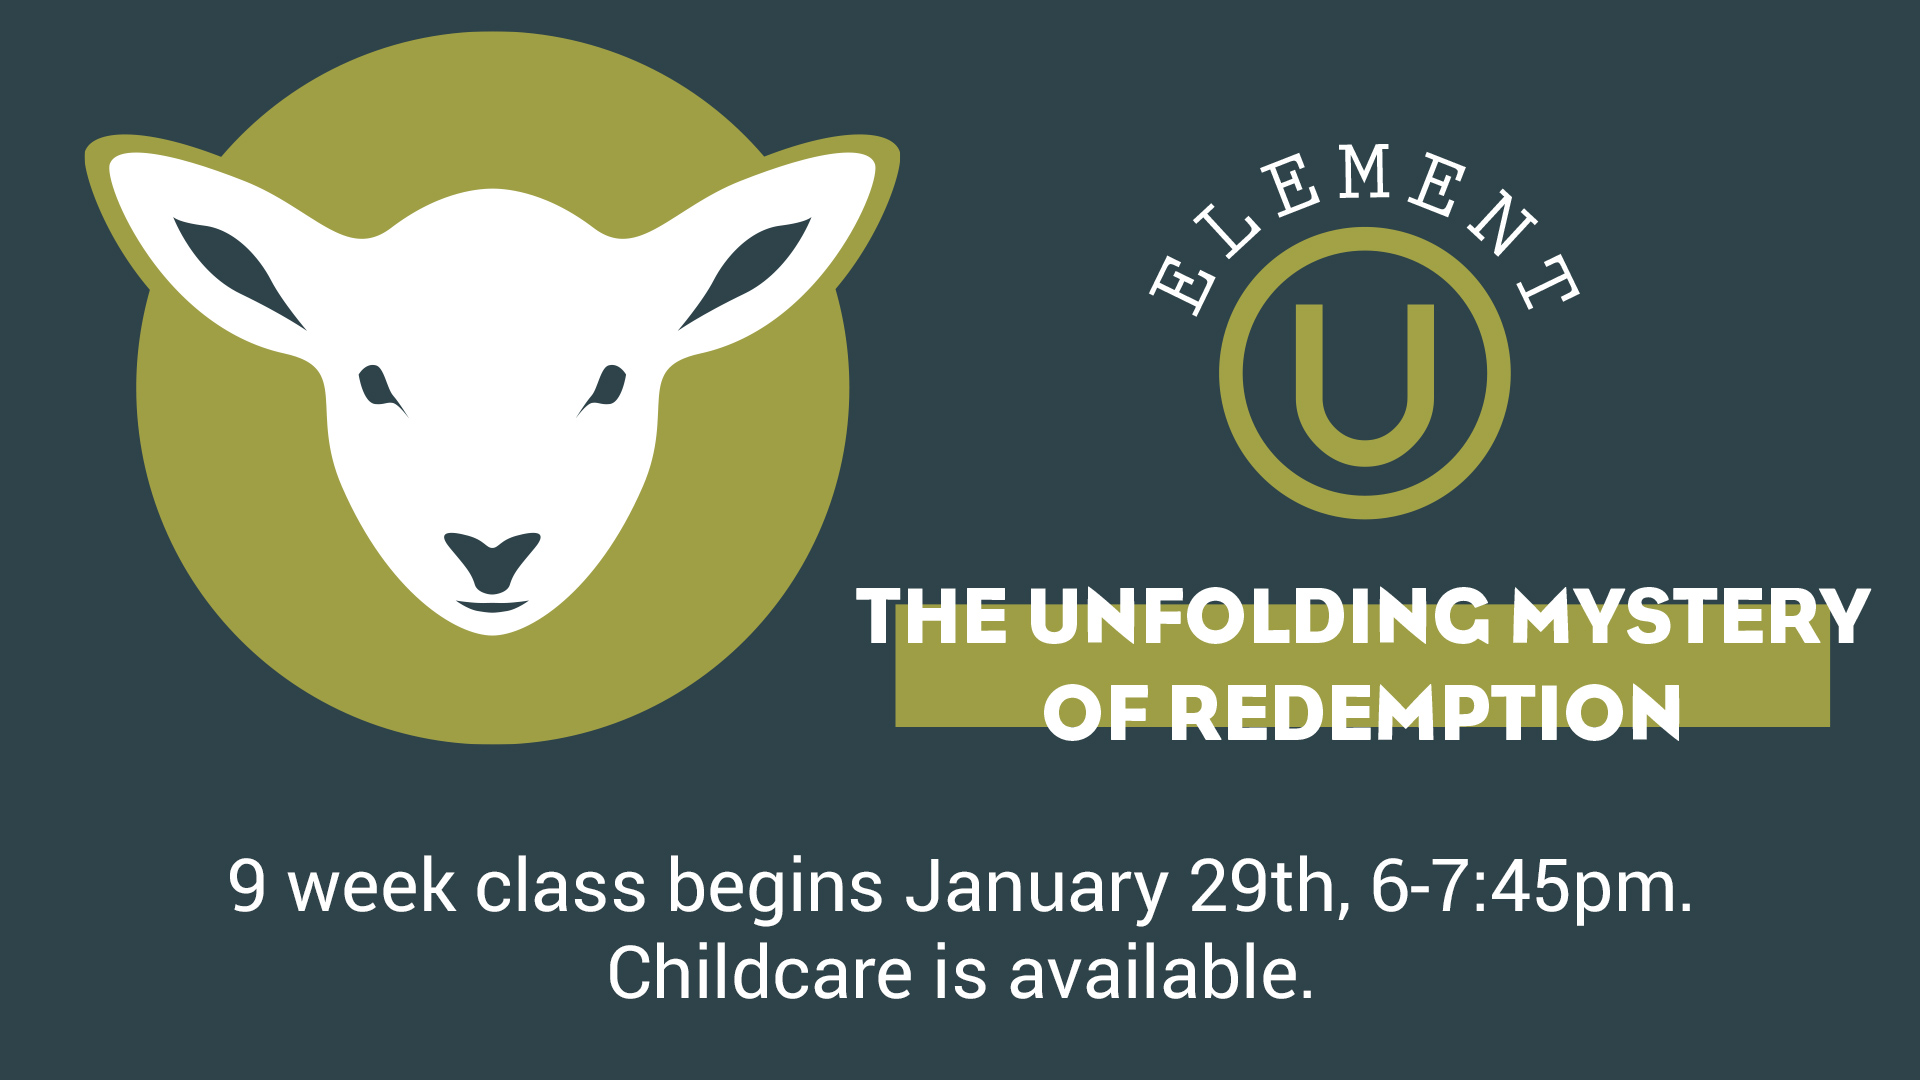 Element U: The Unfolding Mystery of Redemption: God's Gracious Plan to Redeem the Human Race.